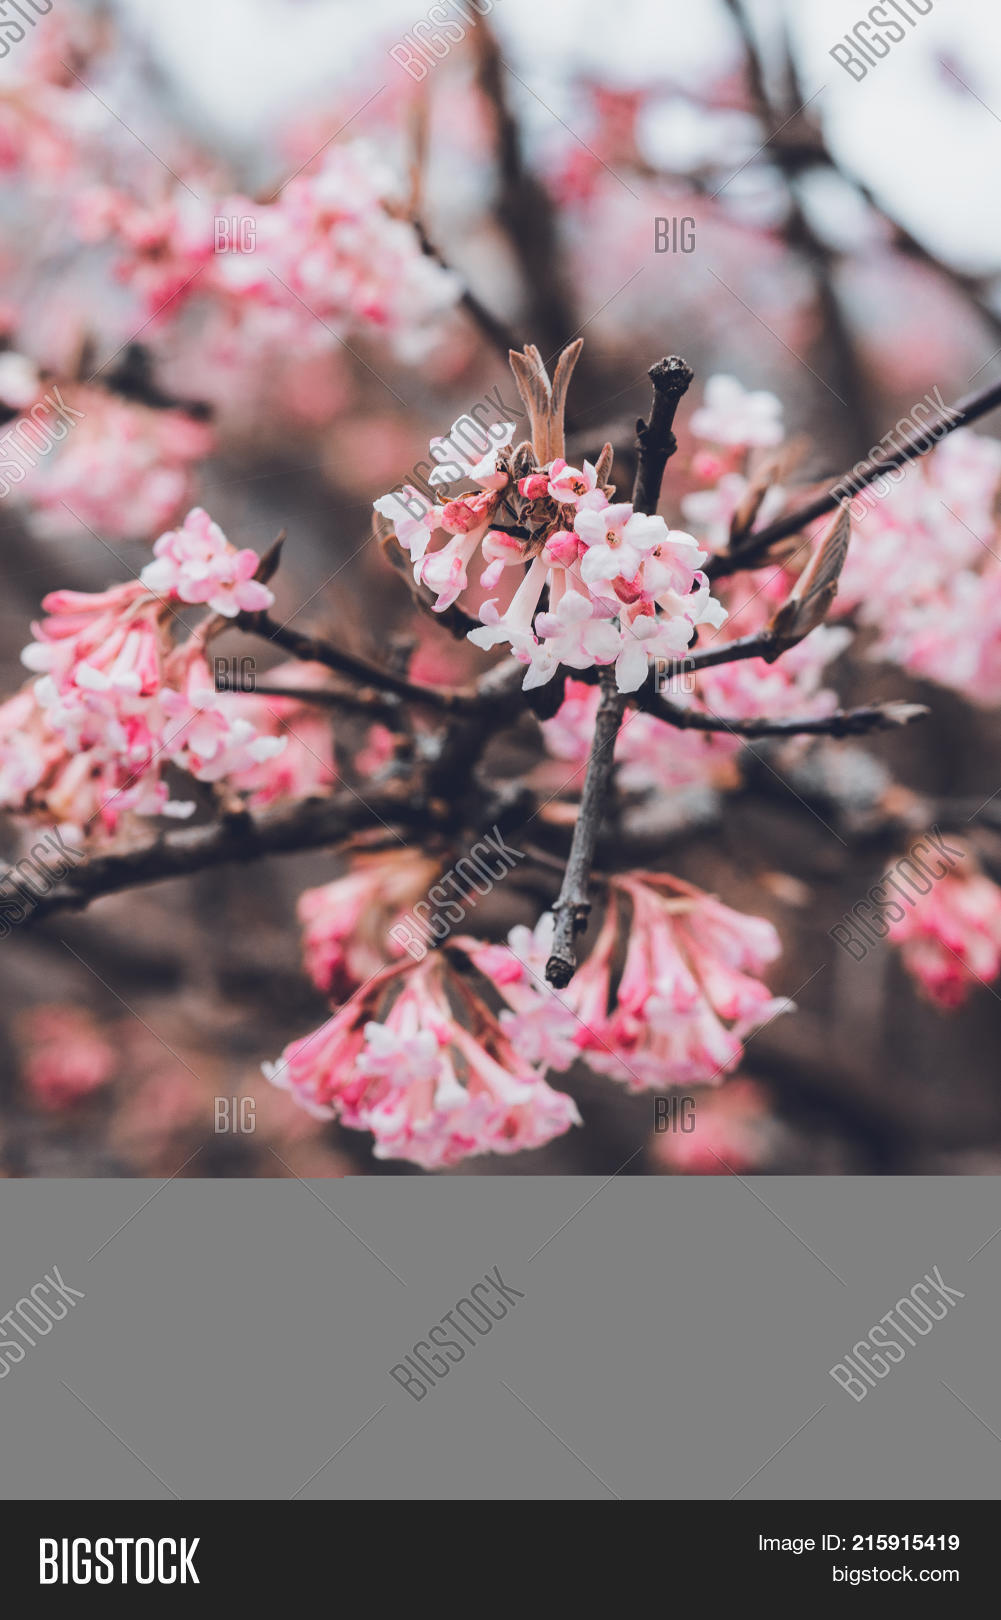 Dainty Pink Blossom On Image Photo Free Trial Bigstock